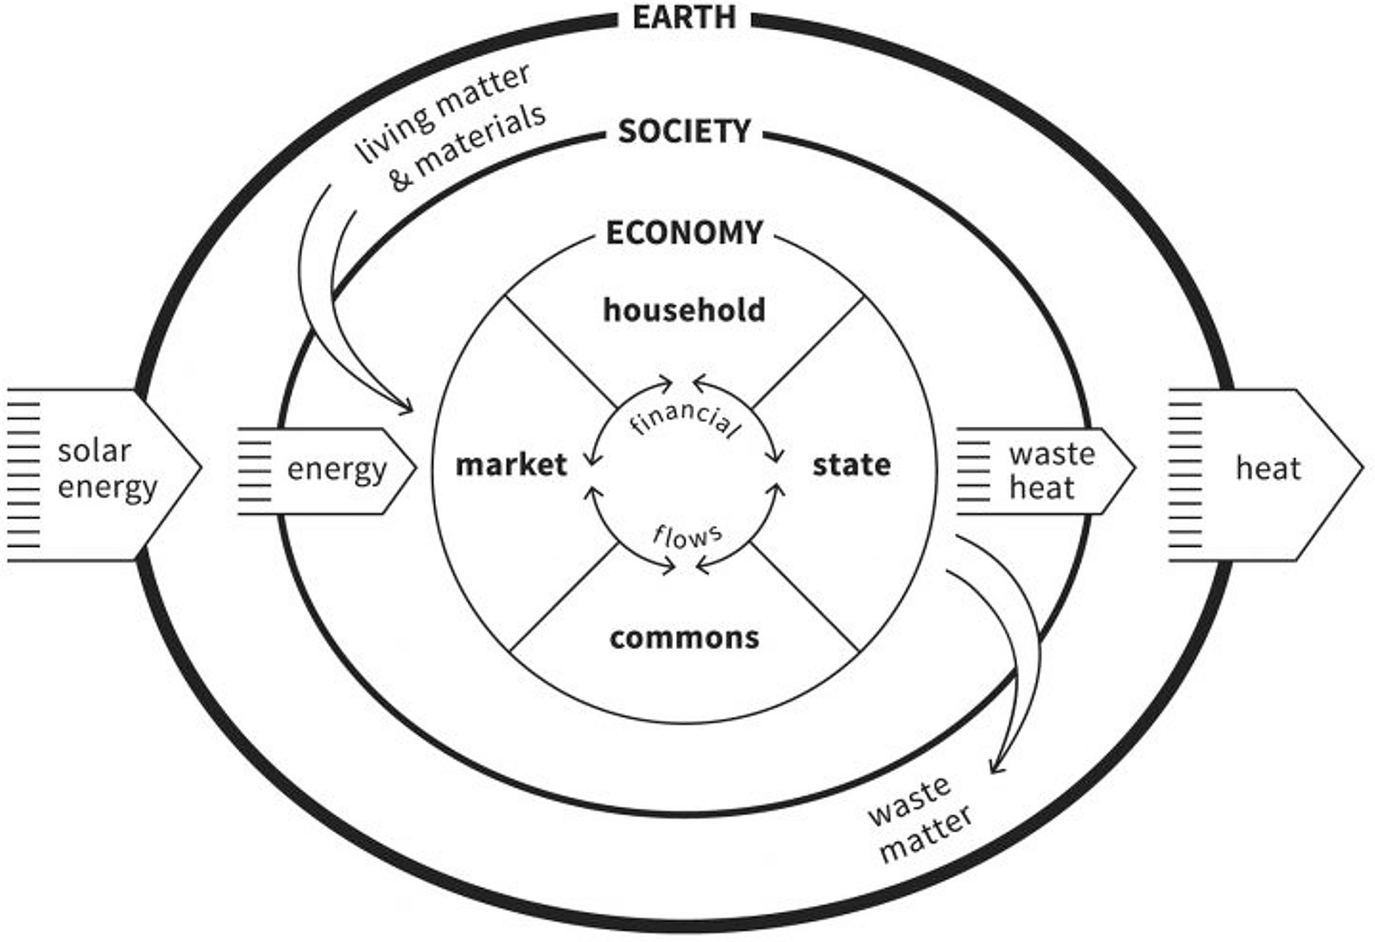 hypothesis for a risk cost of carbon revising the externalities and Causes of Global Warming Diagram open image in new window